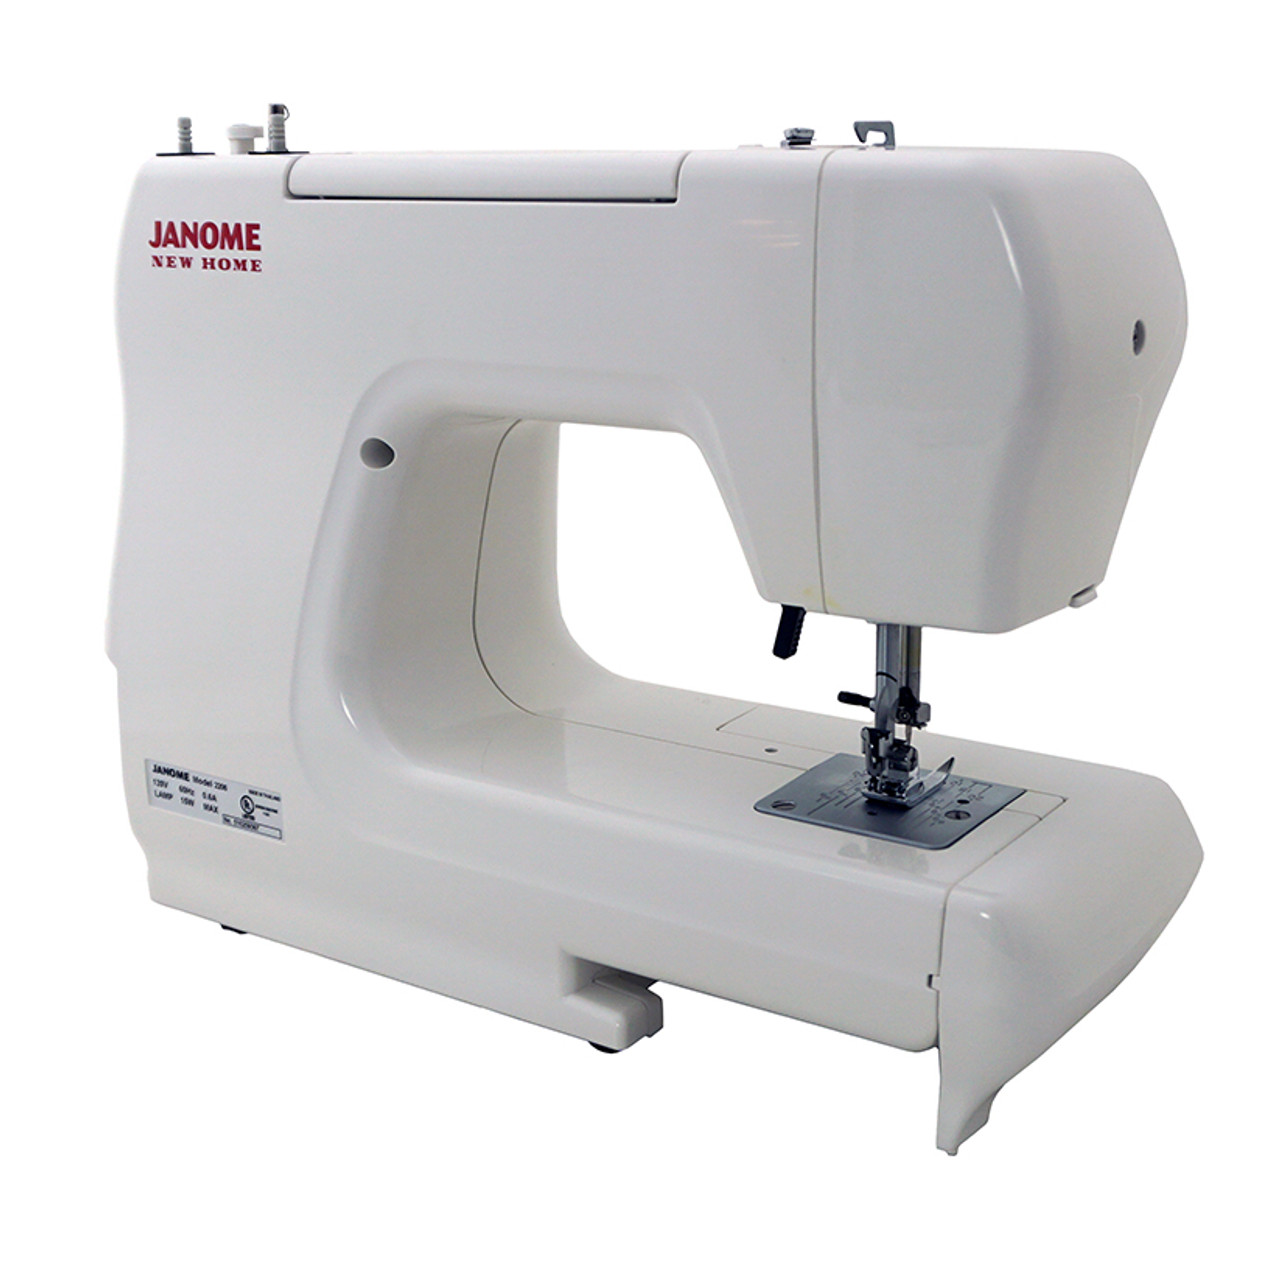 Janome 40 Sewing Machine With Exclusive Bonus Bundle 4040 Stunning Janome 2206 Sewing Machine Reviews